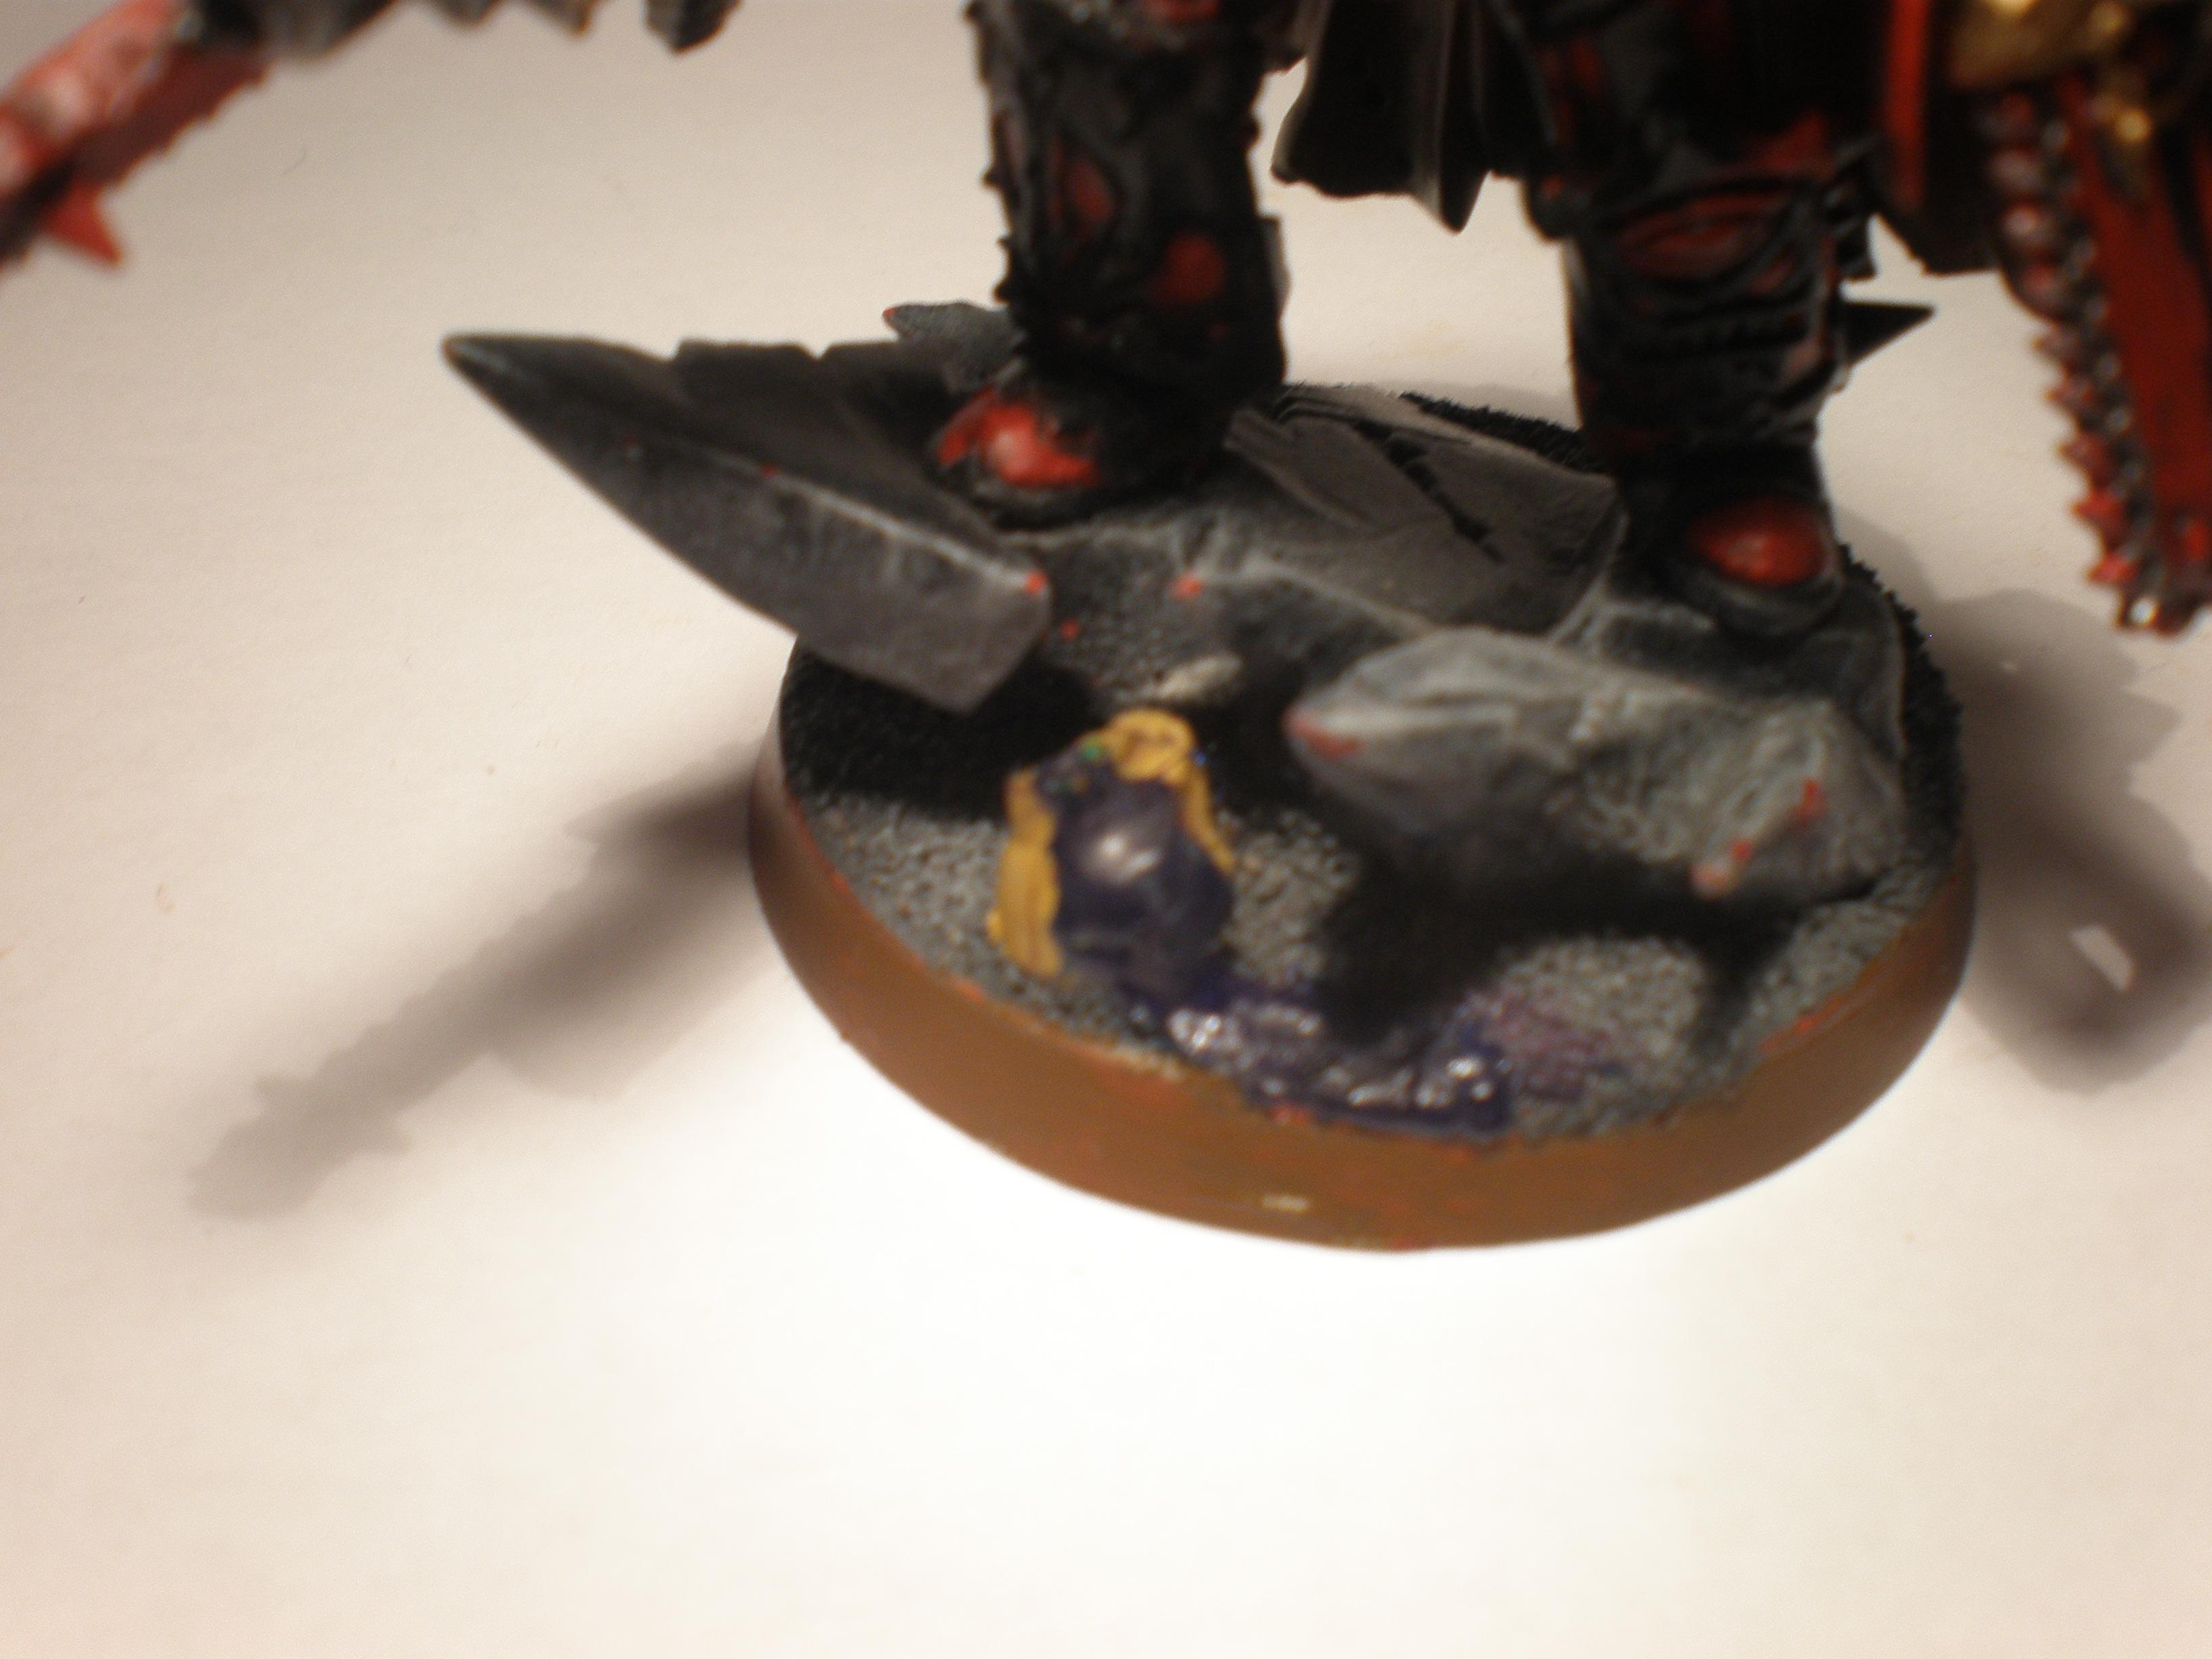 My firend plays Tau so i took a tau head and painted it in his army's colours and added some blood